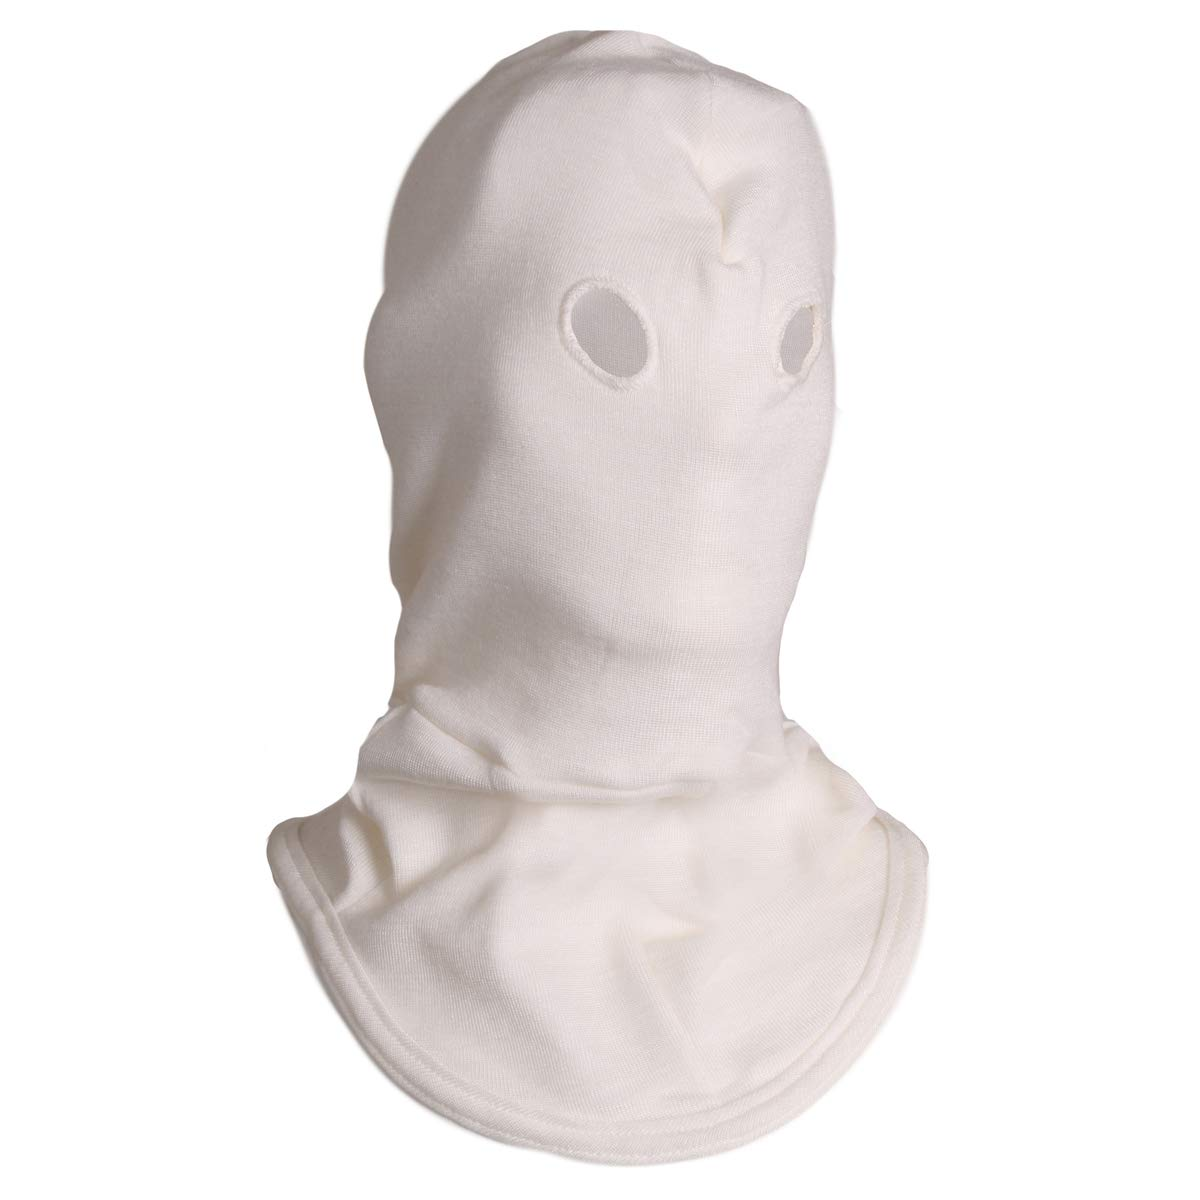 National Safety Apparel One Size Fits Most White DuPont Nomex Flame Resistant Balaclava